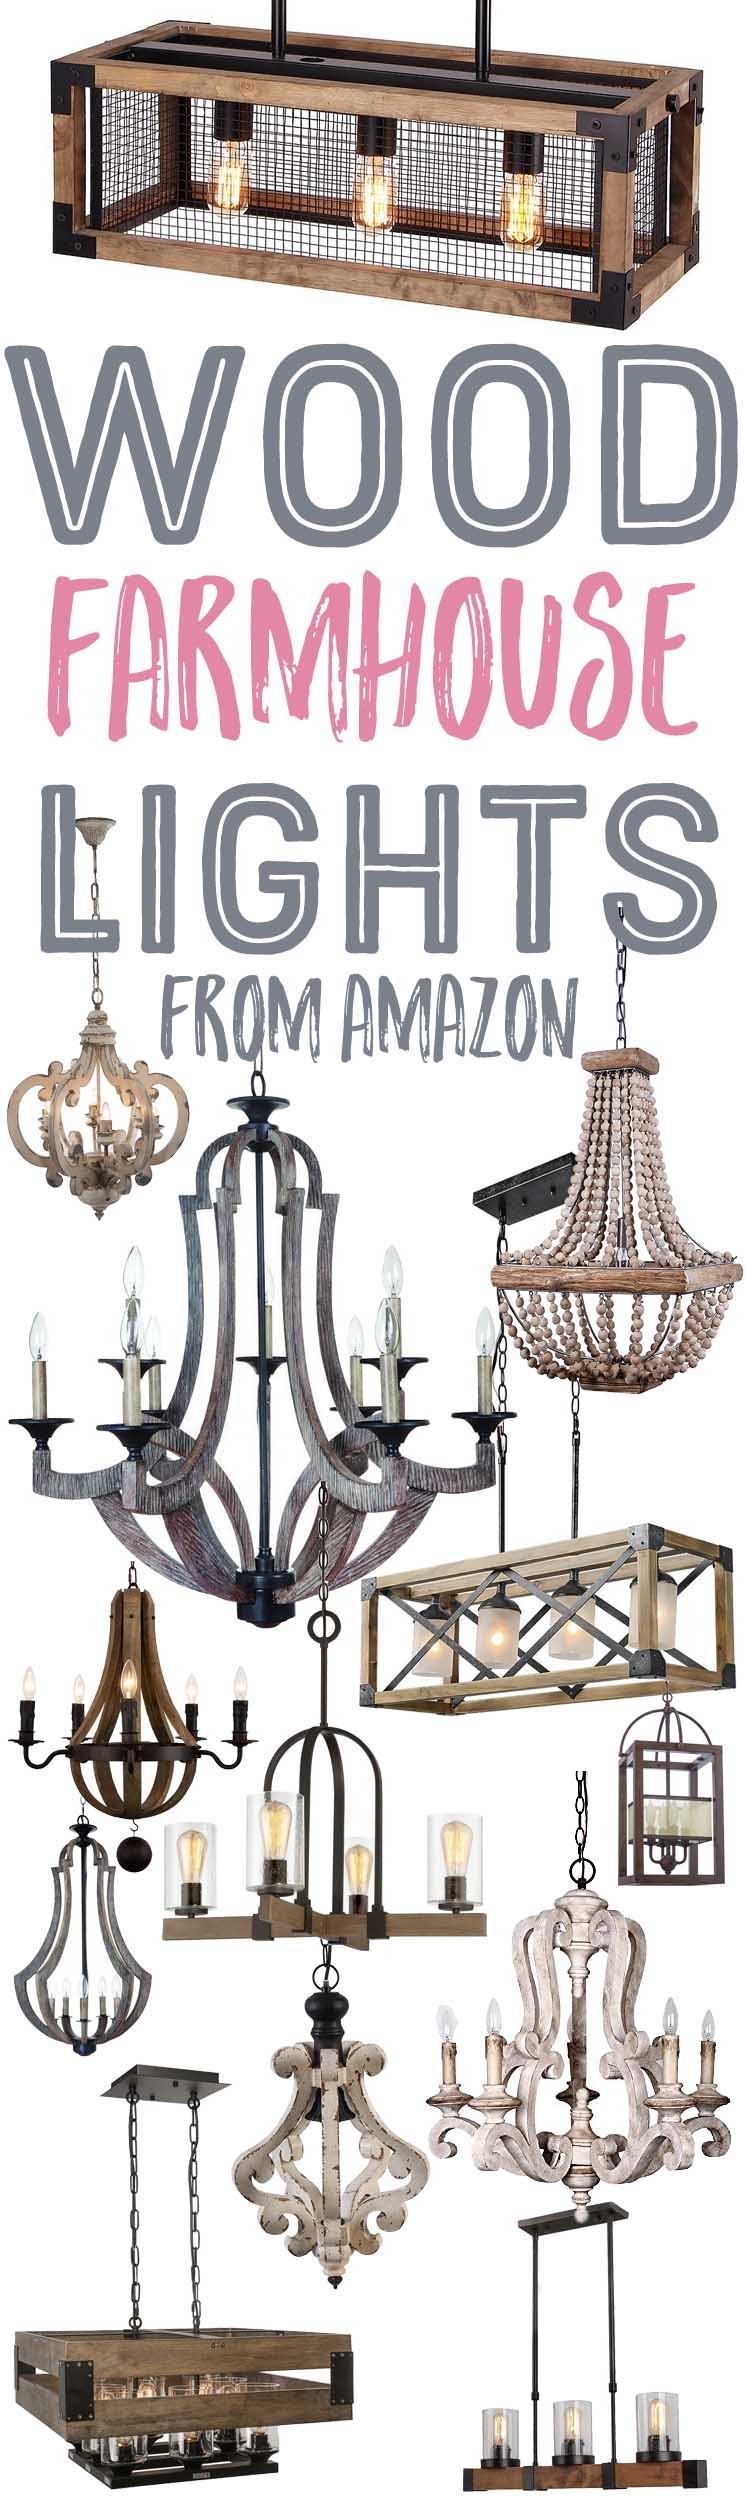 Wood farmhouse style chandeliers and lights from amazon the wood farmhouse style chandeliers and lights from amazon aloadofball Choice Image